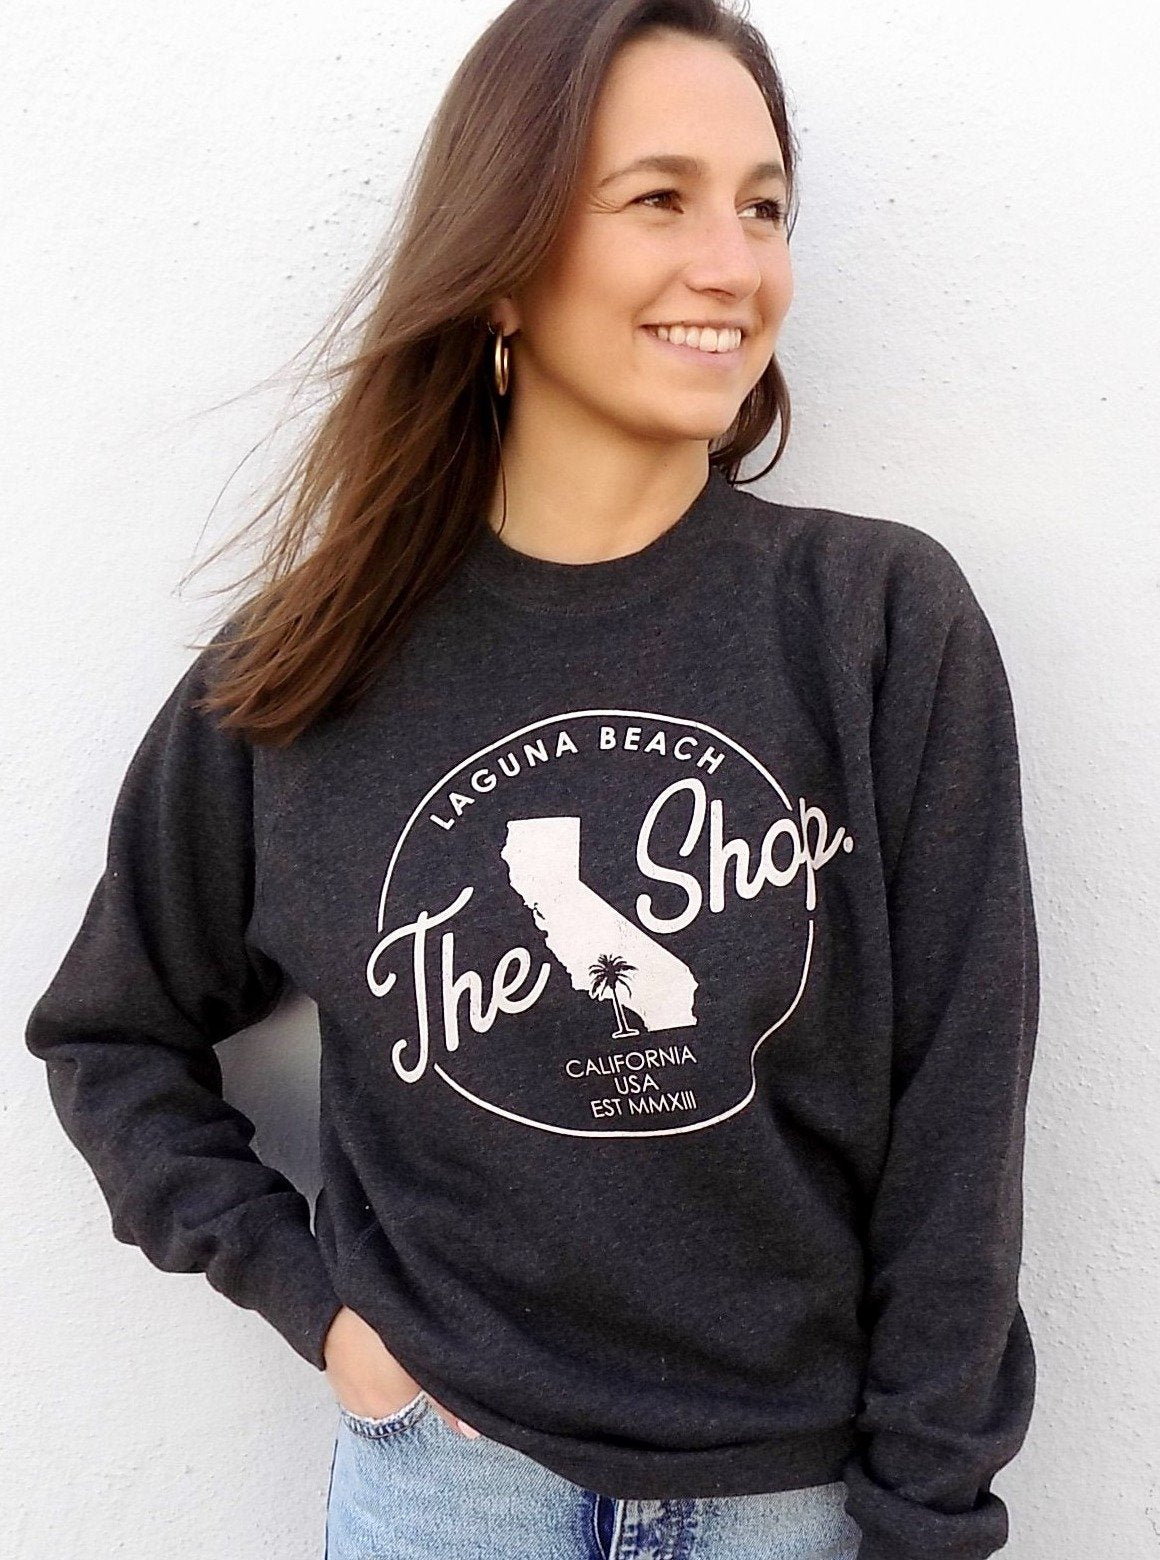 THE SHOP LAGUNA BEACH CLASSIC Cali Pullover Crew Neck Fleece Sweatshirt Carbon